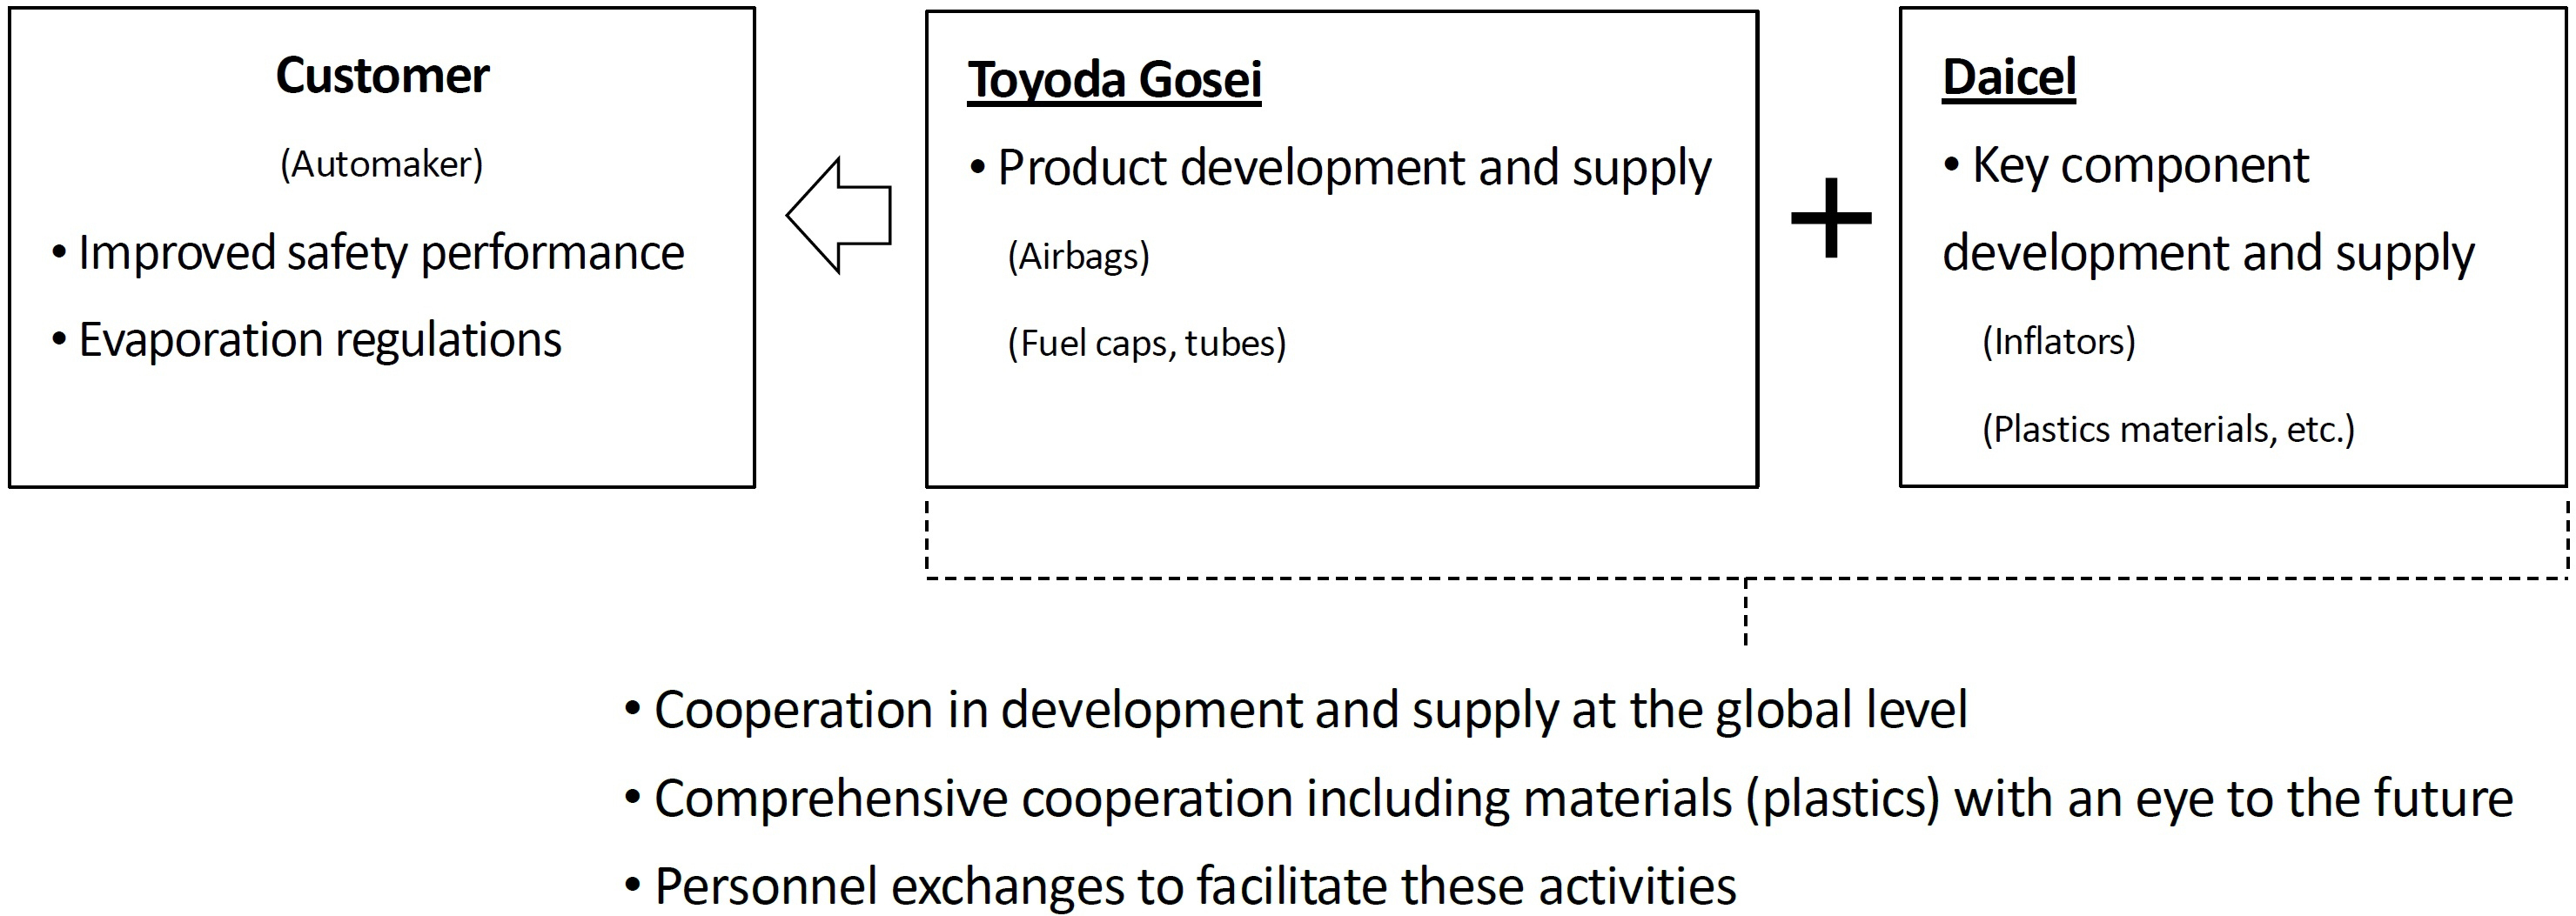 Toyoda Gosei and Daicel Announce Enhanced Cooperation and Capital ...